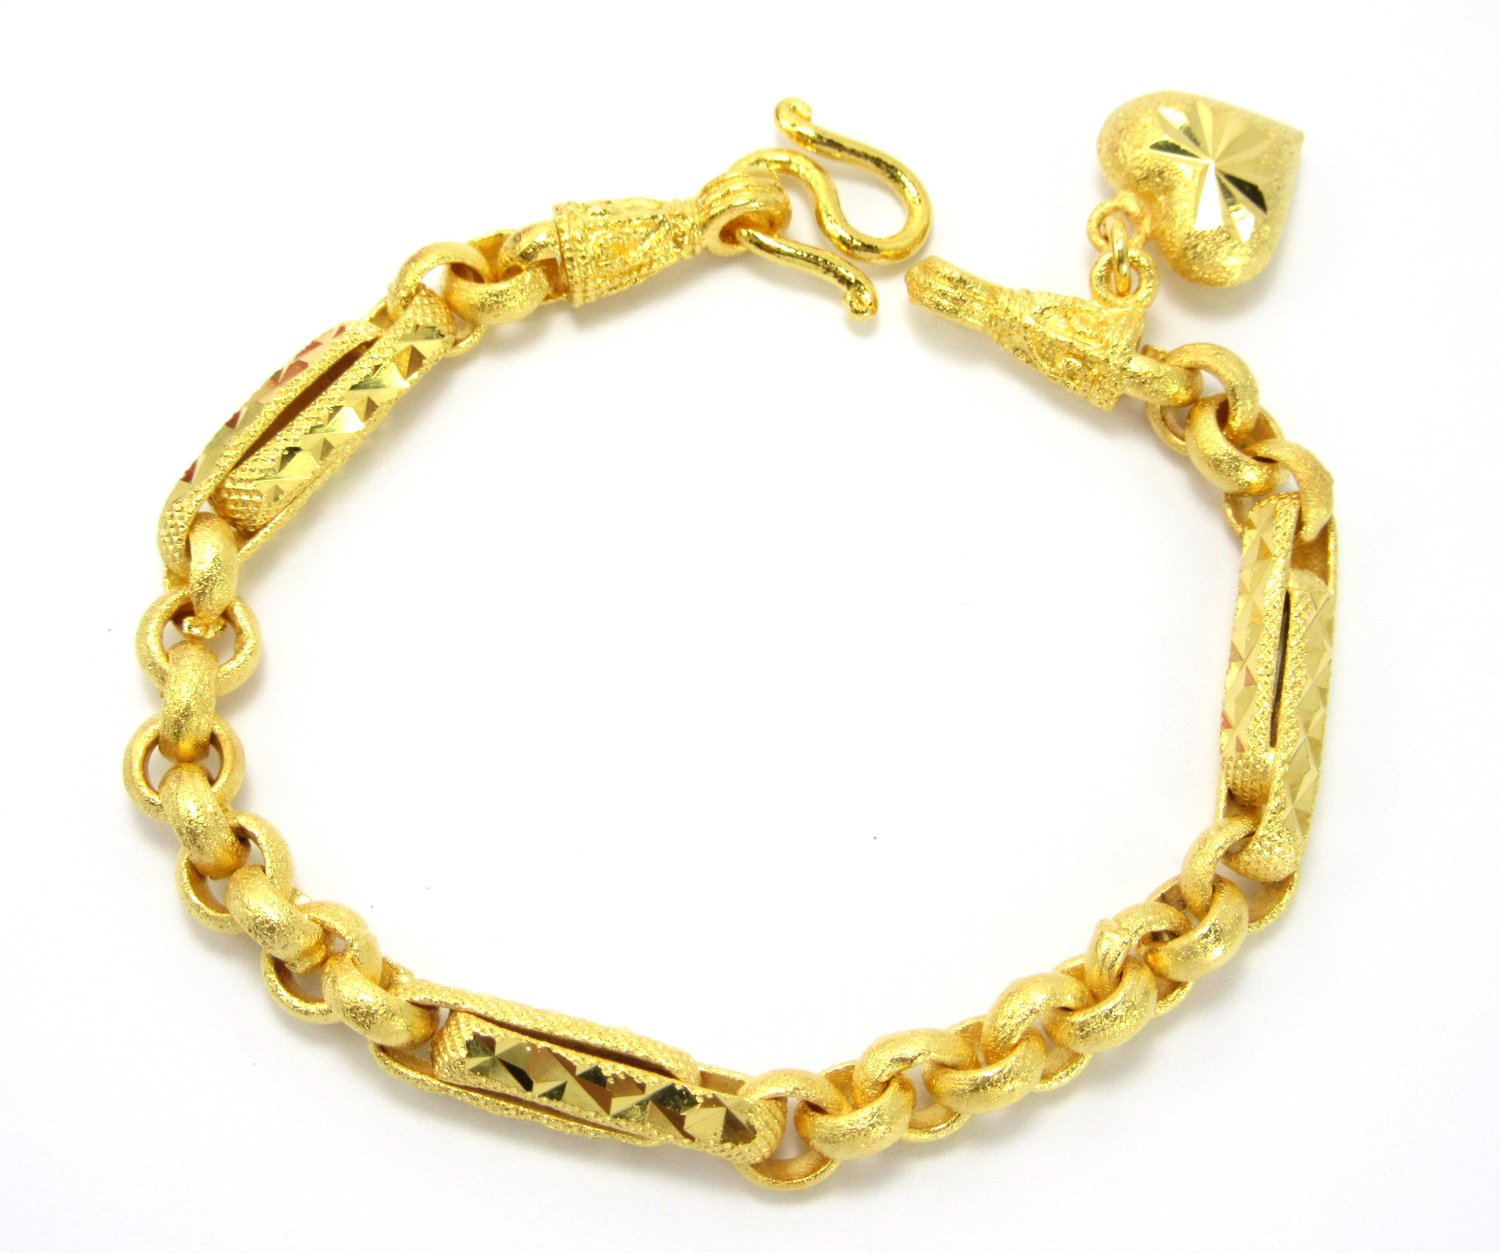 Bangkok Bazaar Classic Thai Style Bracelet 6 3/4 Inch with Heart Charm 24k Gold Plated Jewelry